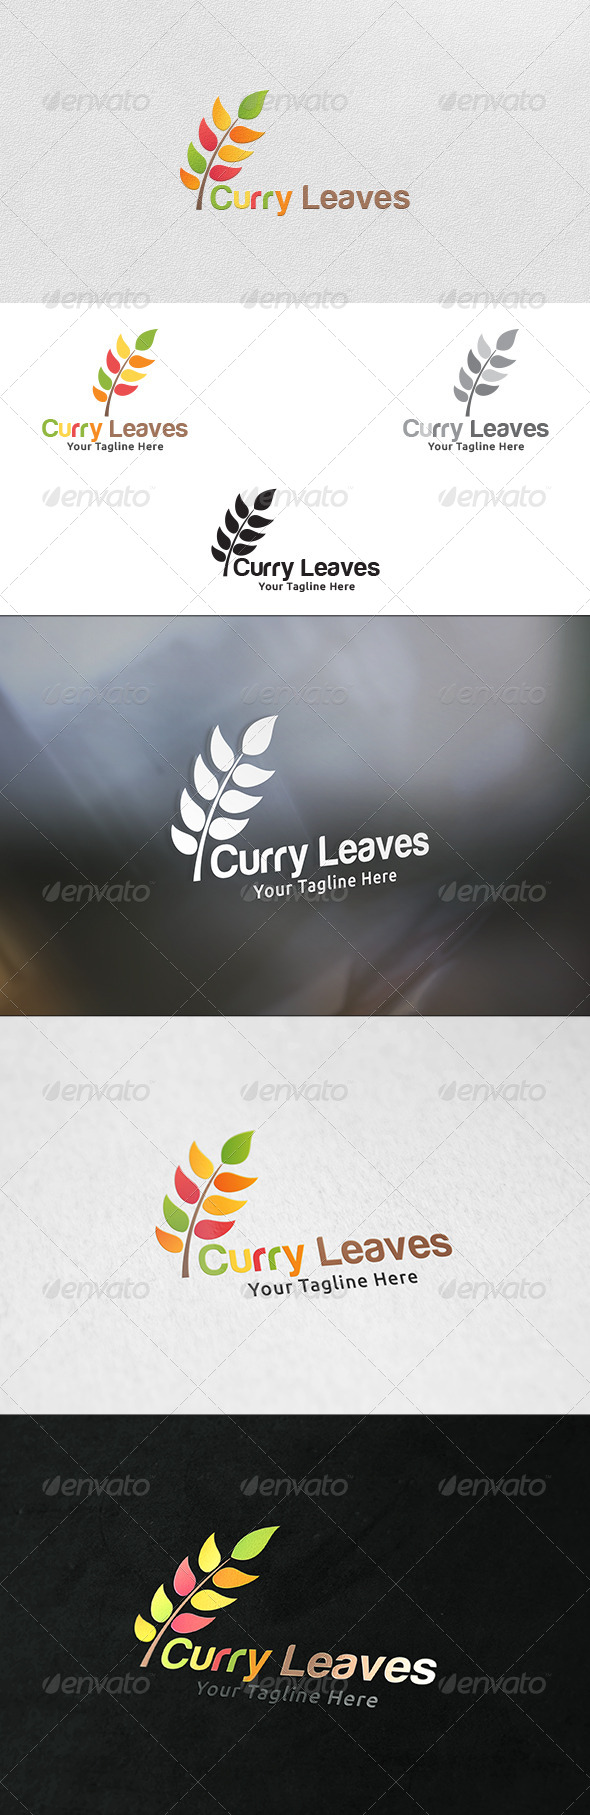 GraphicRiver Curry Leaves Logo Template 6158471